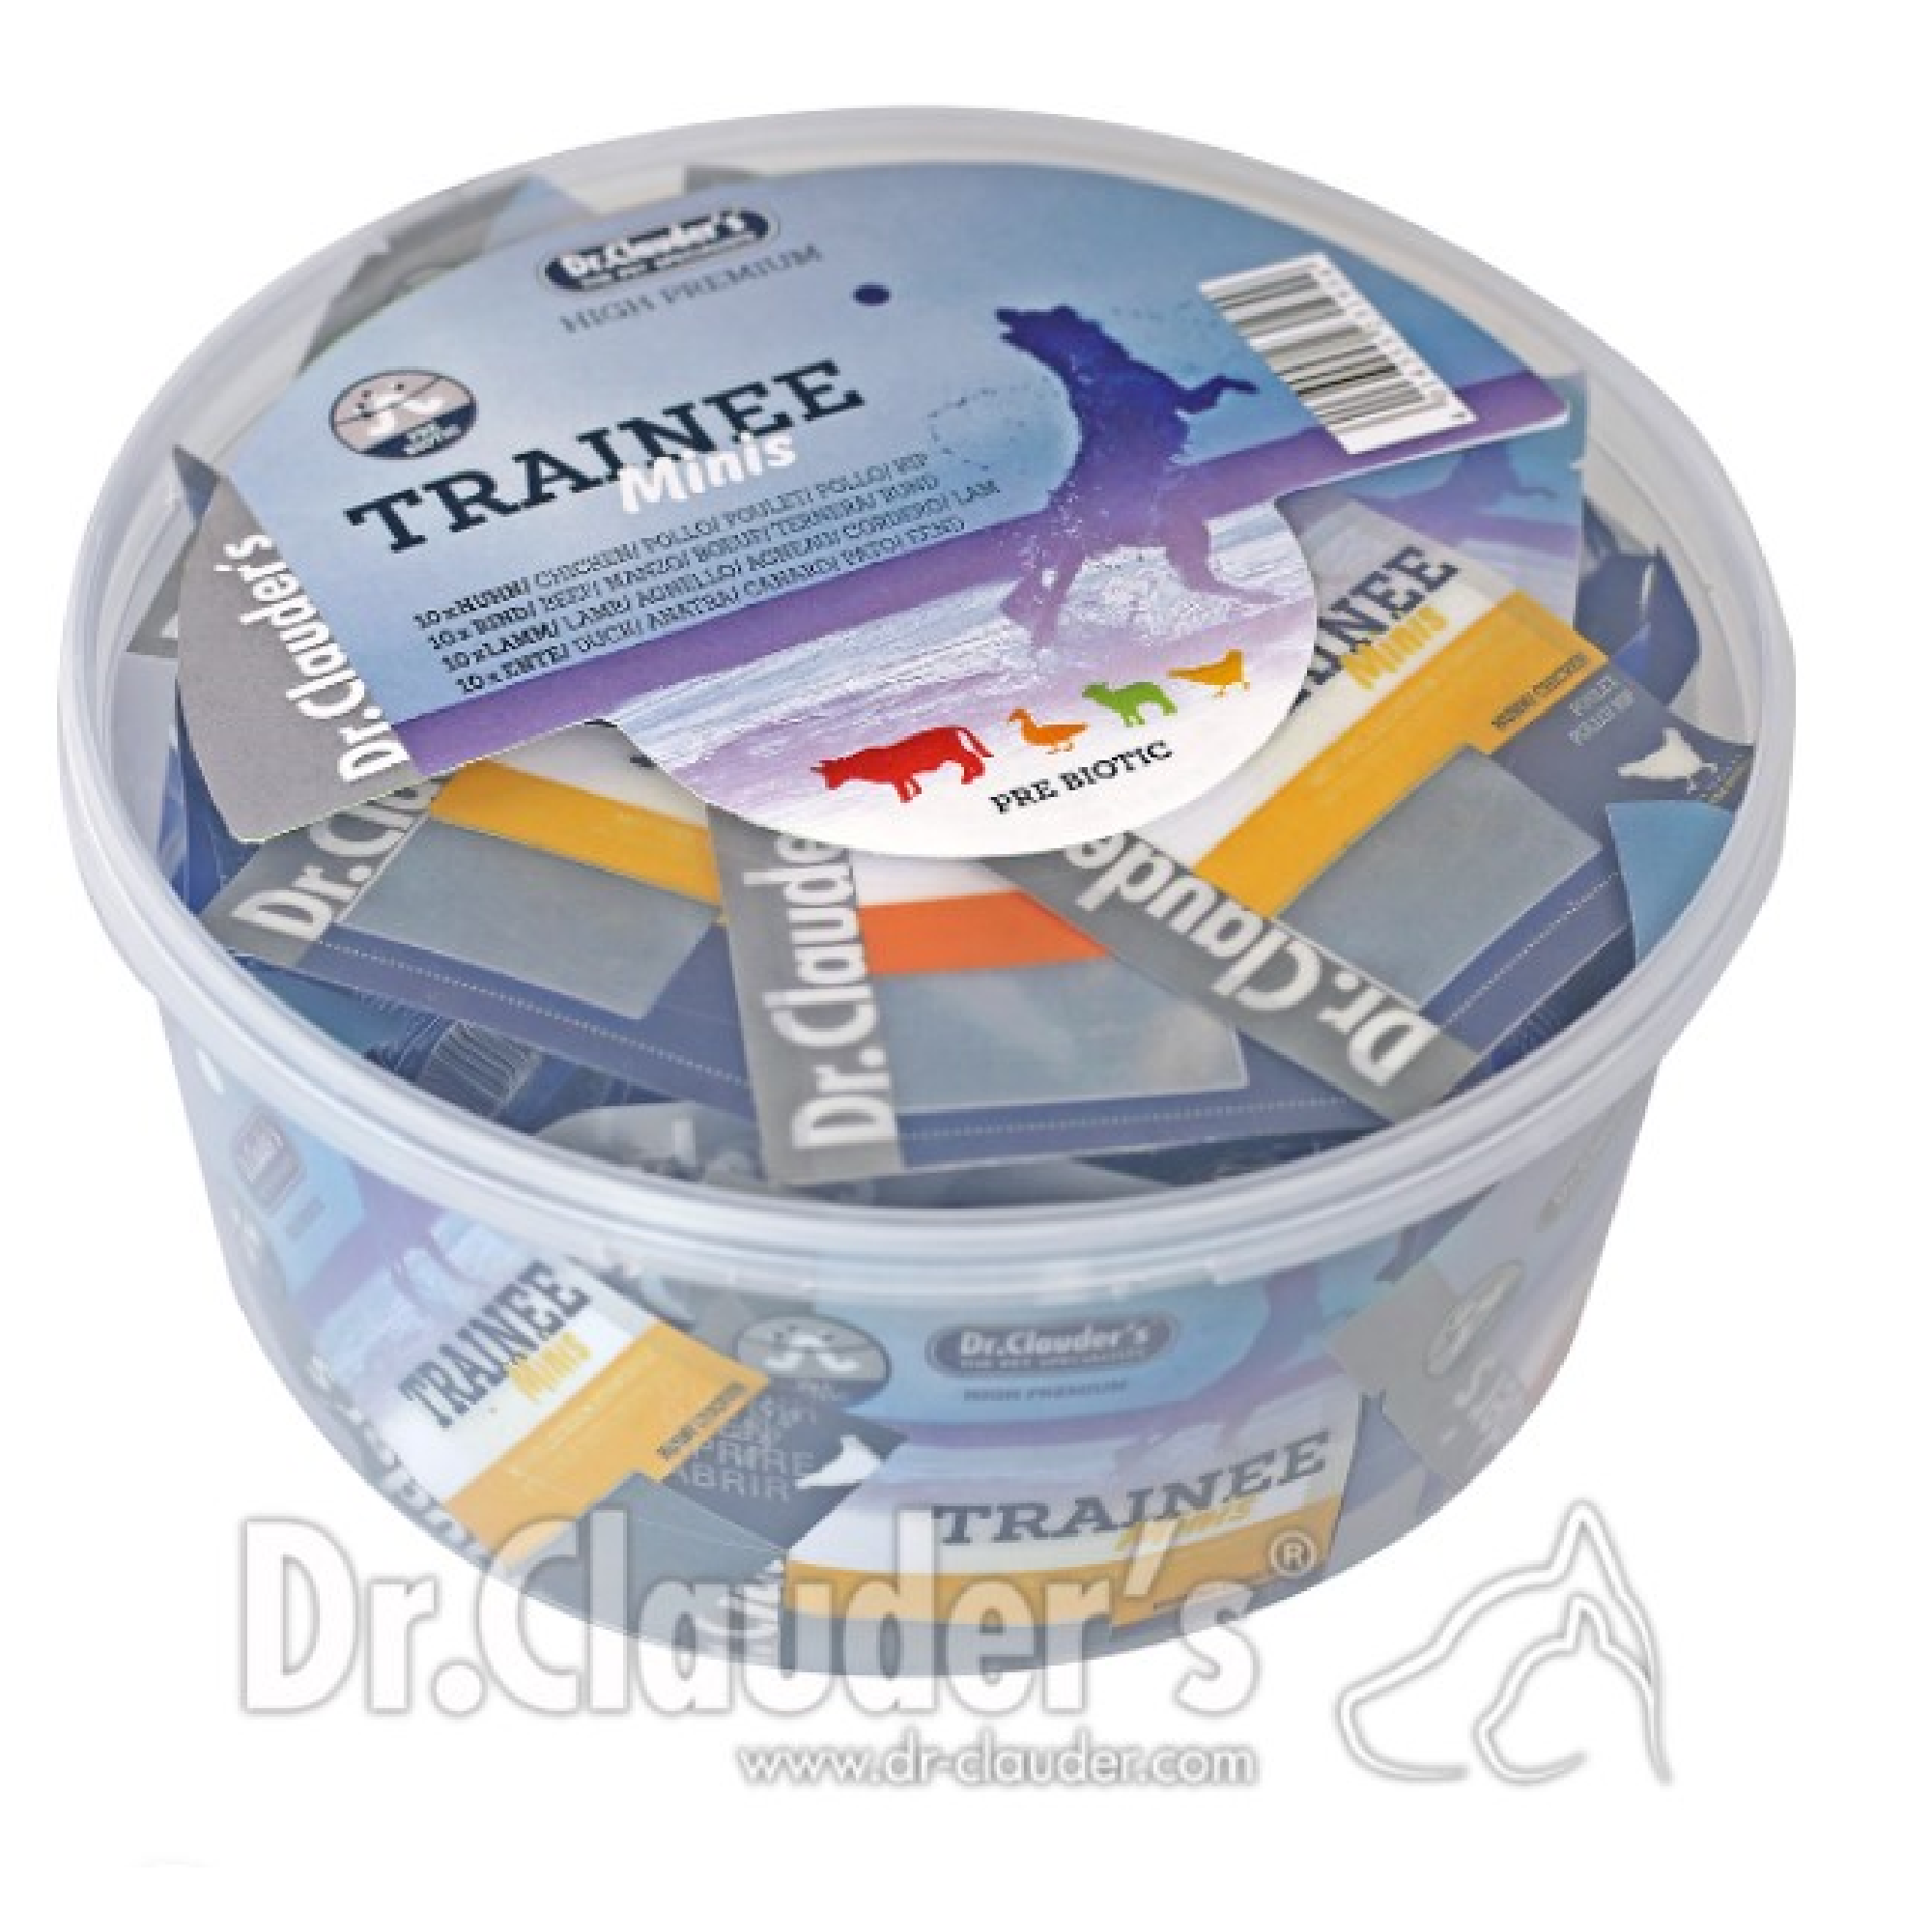 Dr Clauders Snack Mix Box